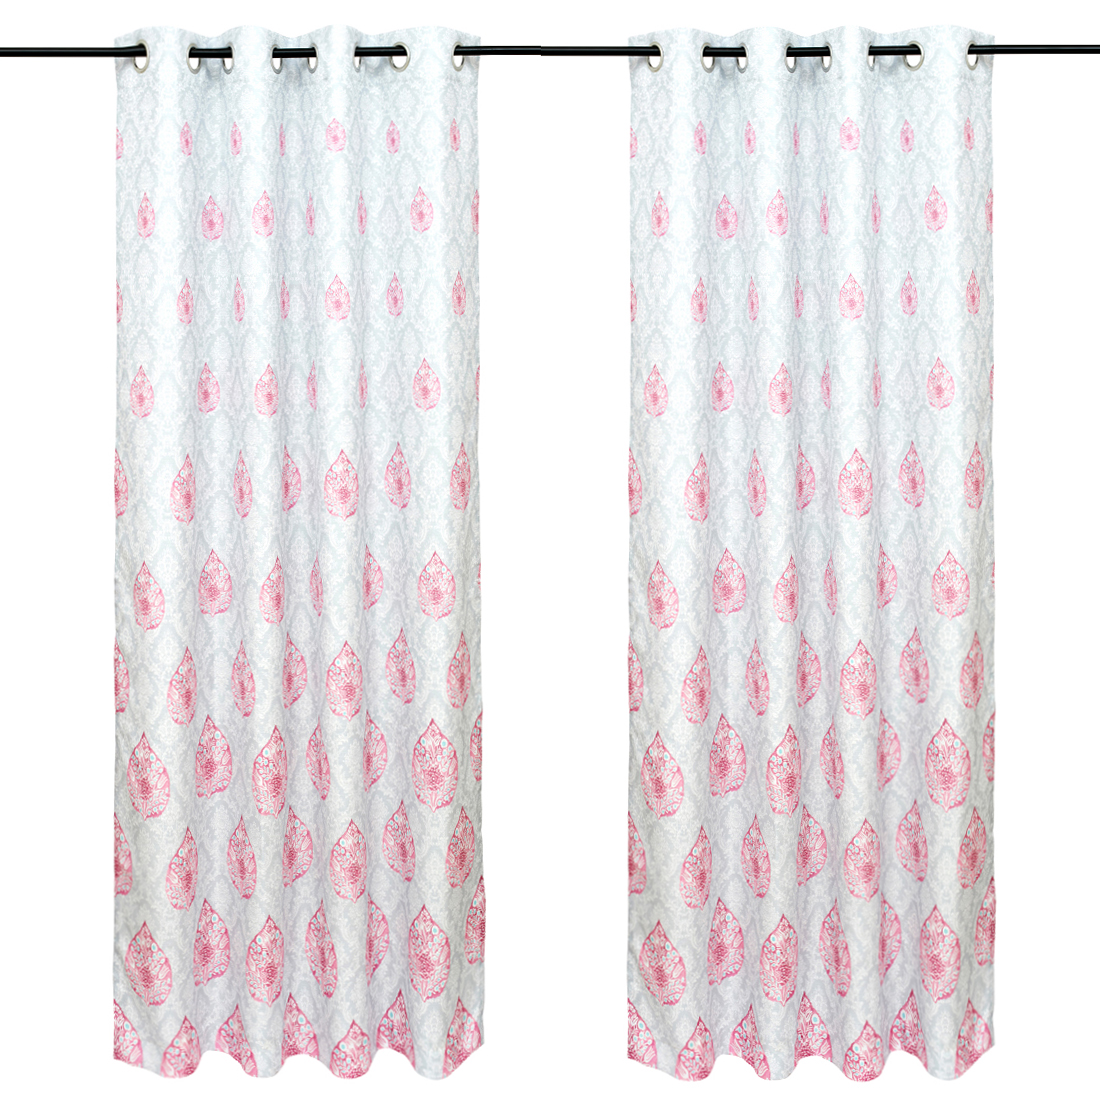 Nora Printed set of 2 Polyester Door Curtains in Rose Colour by Living Essence